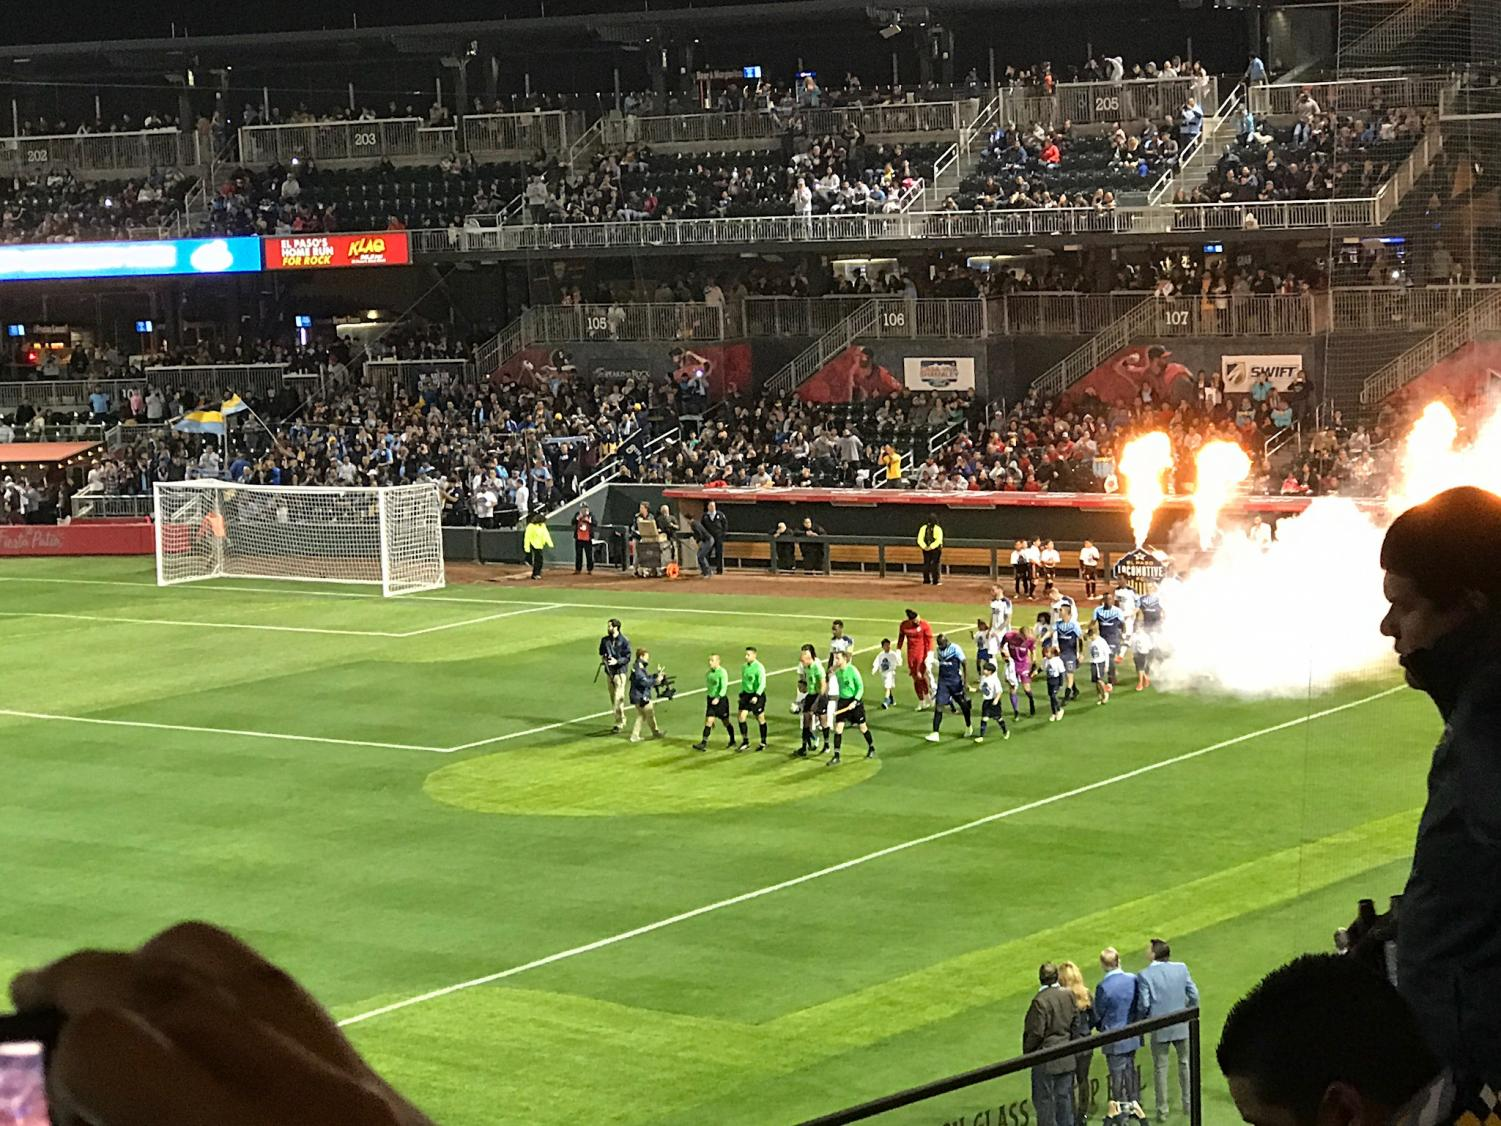 Locomotive+FC+and+OKC+FC+Energy+walk+out+onto+the+field+for+the+inaugural+opener.+